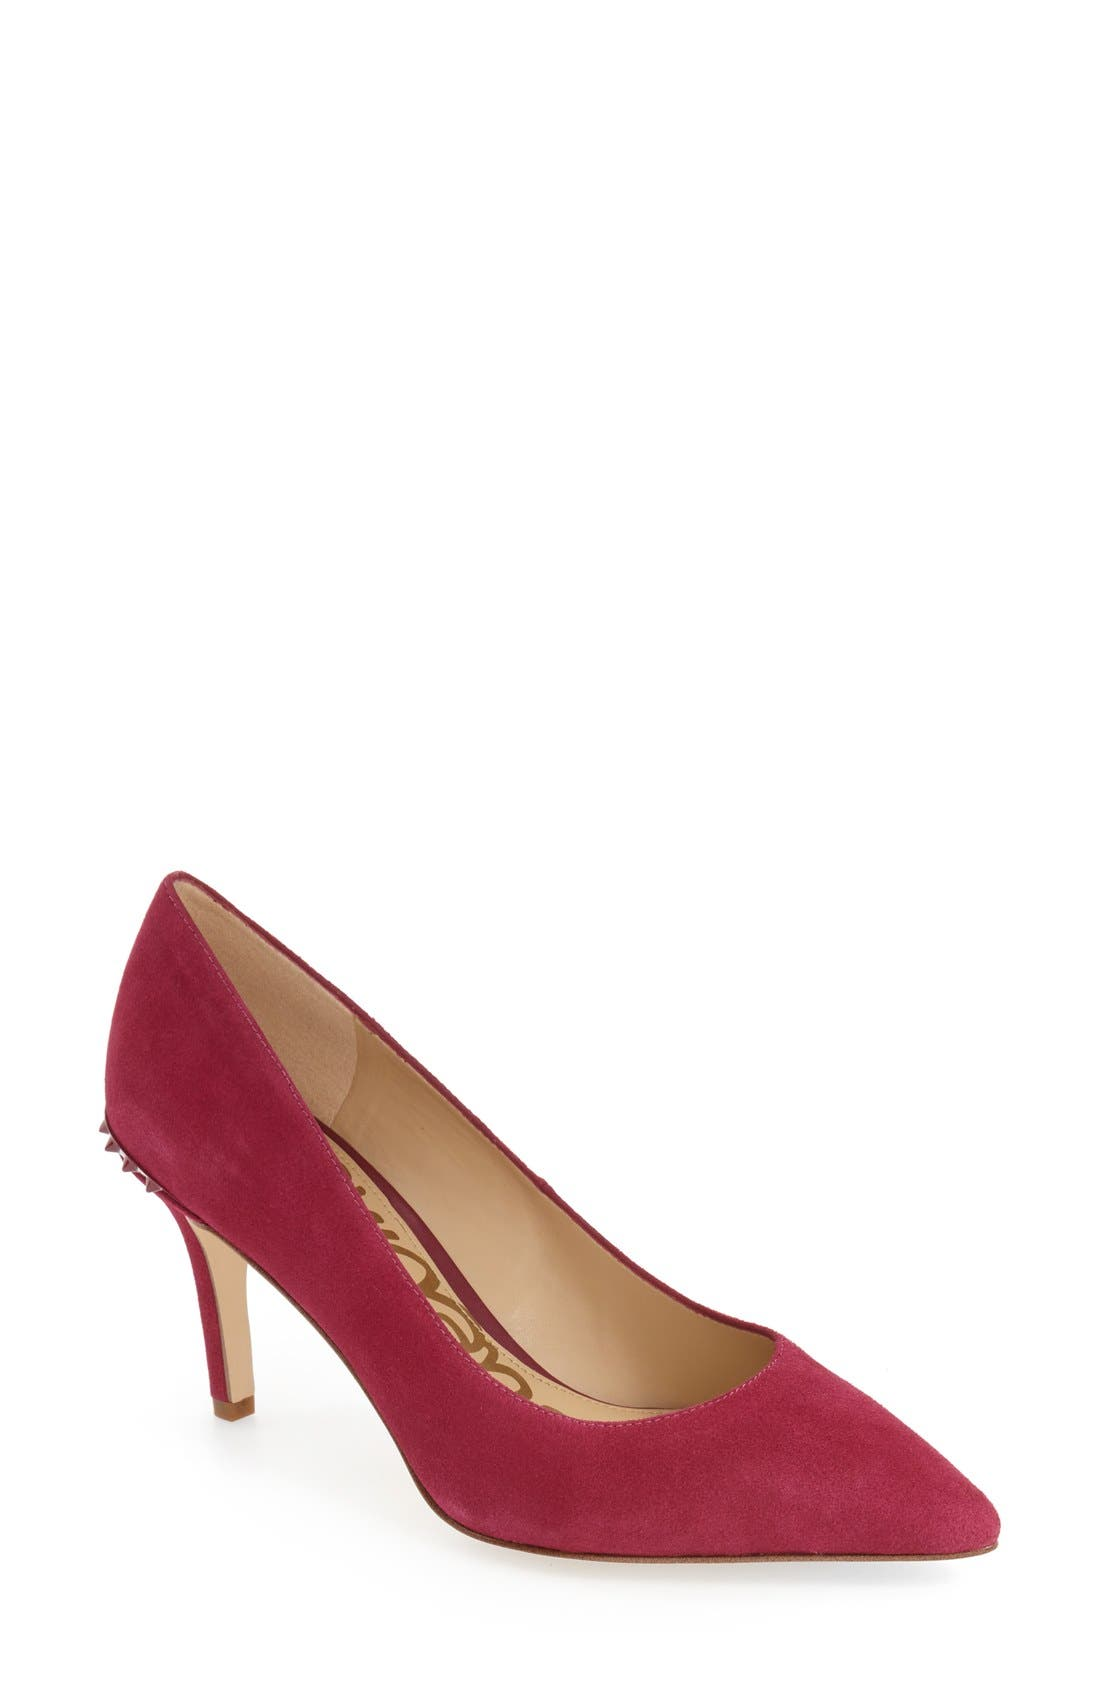 Main Image - Sam Edelman 'Tonia' Spike Rand Pointy Toe Pump (Women)